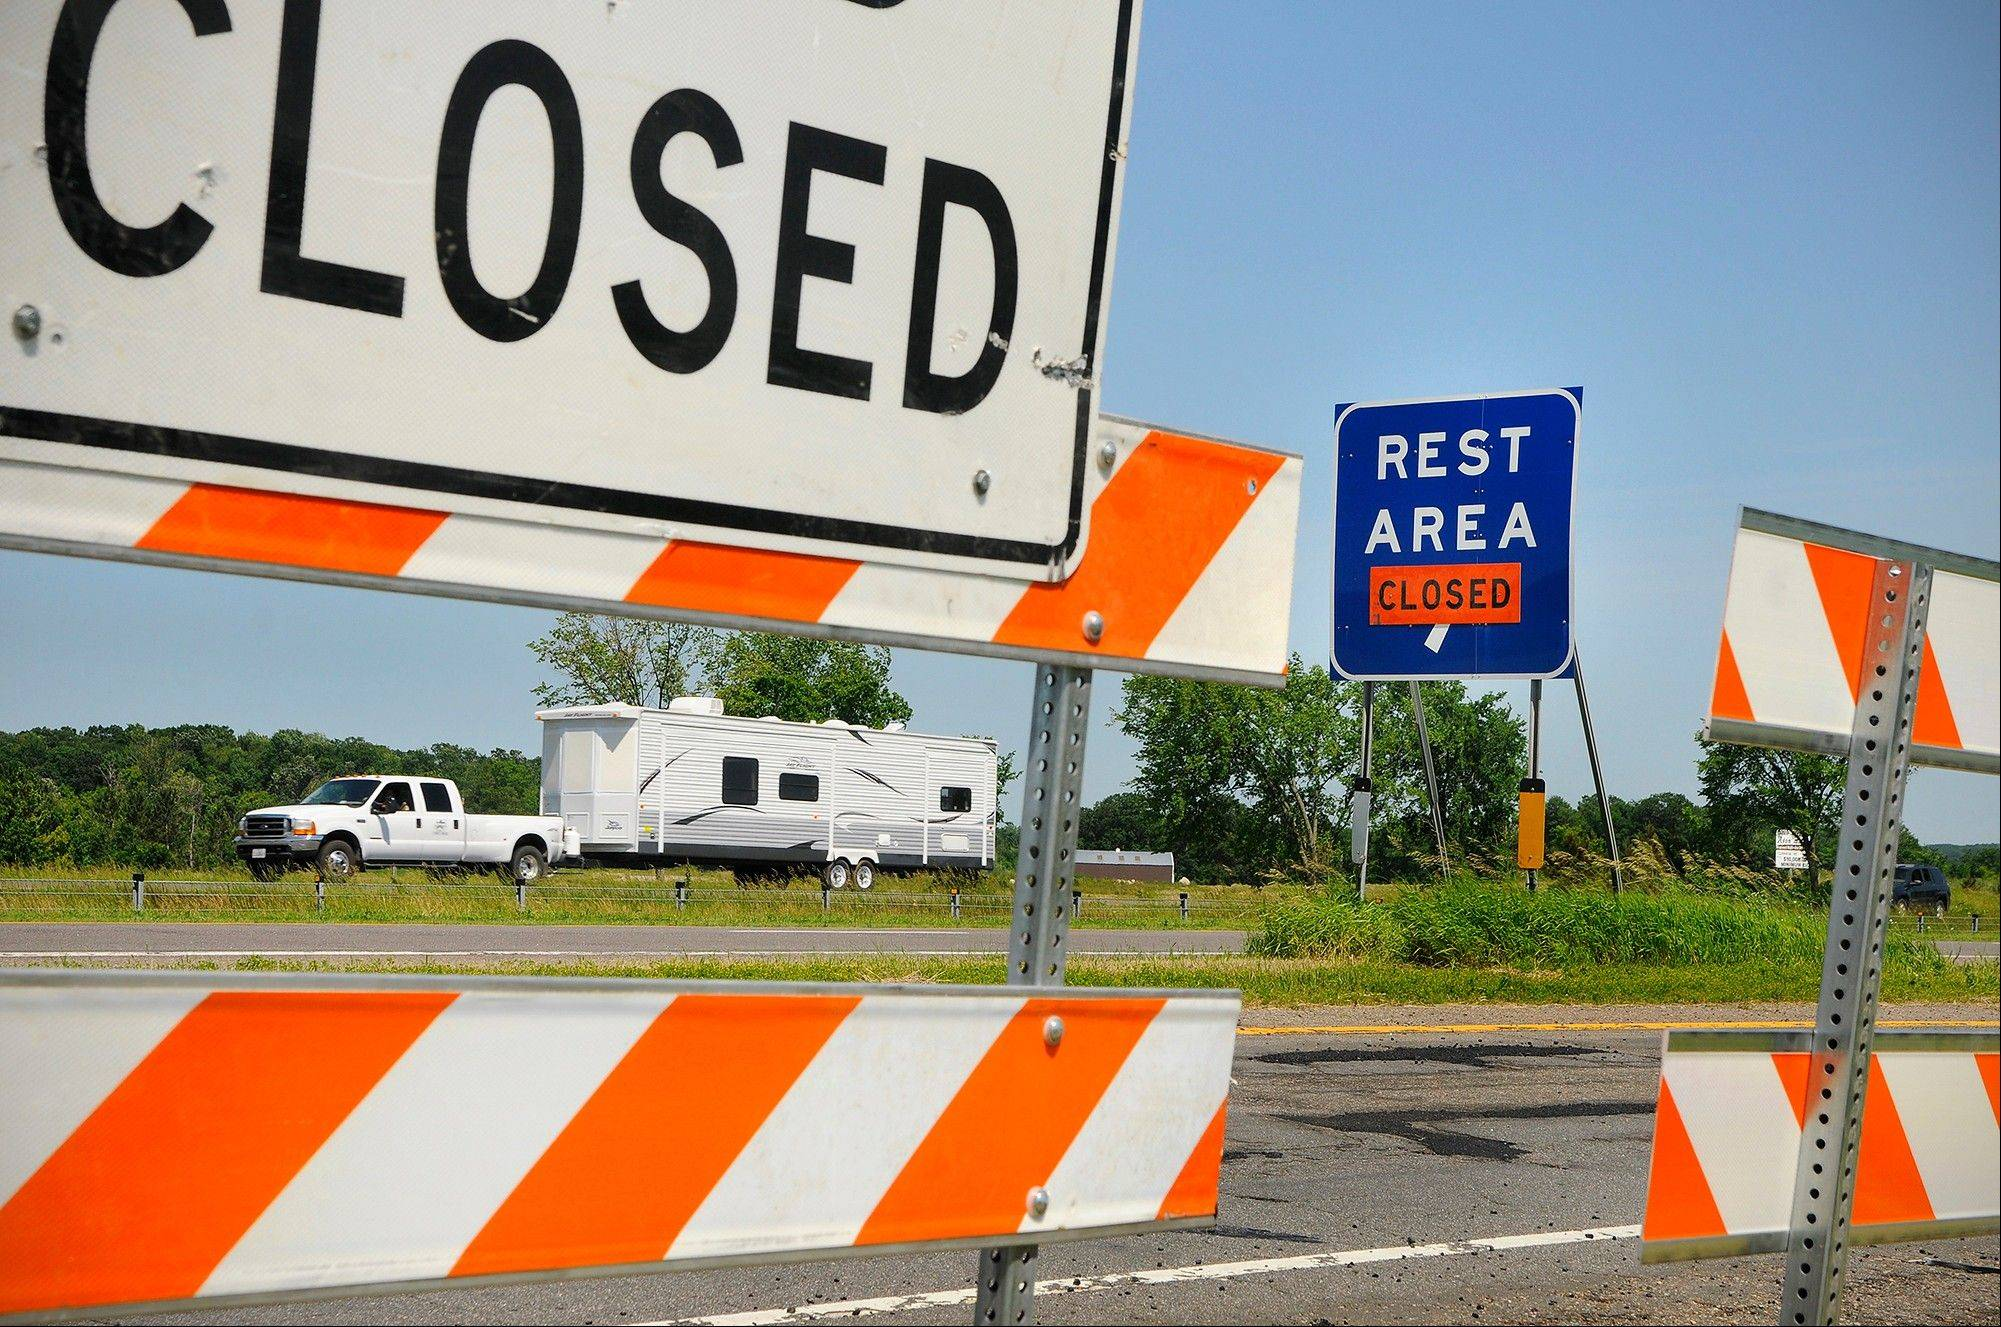 Signs are posted and barricades are out closing the rest areas on the east and west bound lanes of Interstate 94 near Avon, Minn., Wednesday, June 29, 2011. Rest areas around St. Cloud, Minn., are being closed because of the possible state shutdown.